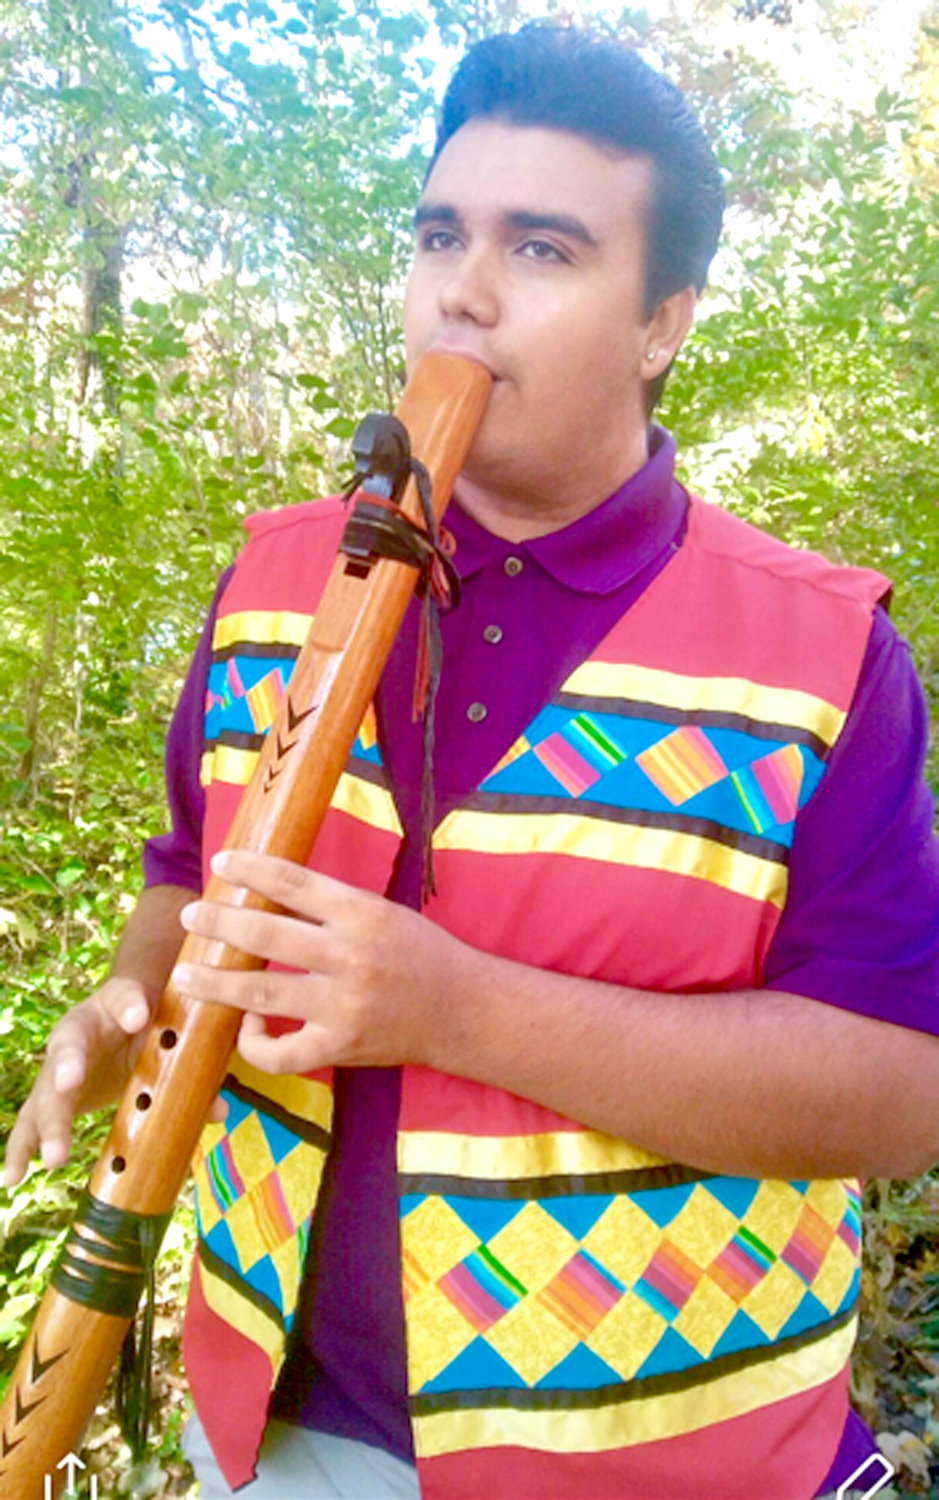 KYLE COATNEY from Knoxville will be providing native music for the commemorative Trail of Tears walk that will be held Saturday at 11 a.m. at Blythe's Ferry Cherokee Removal Park in Birchwood. The public is invited to attend.